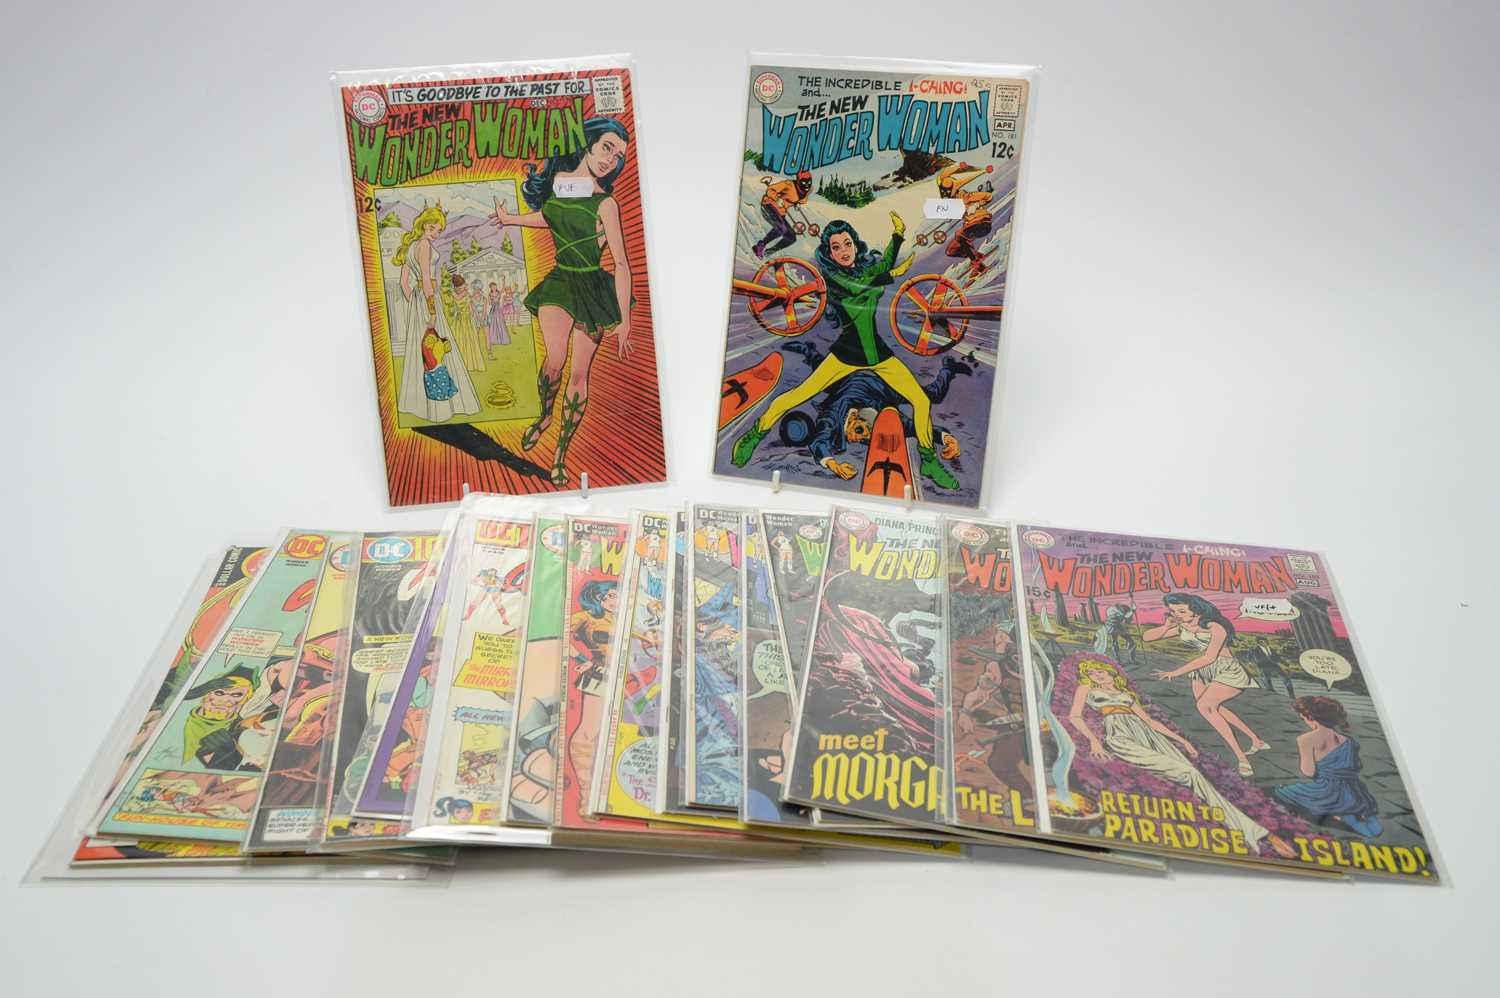 Lot 47 - The New Wonder Woman by DC.